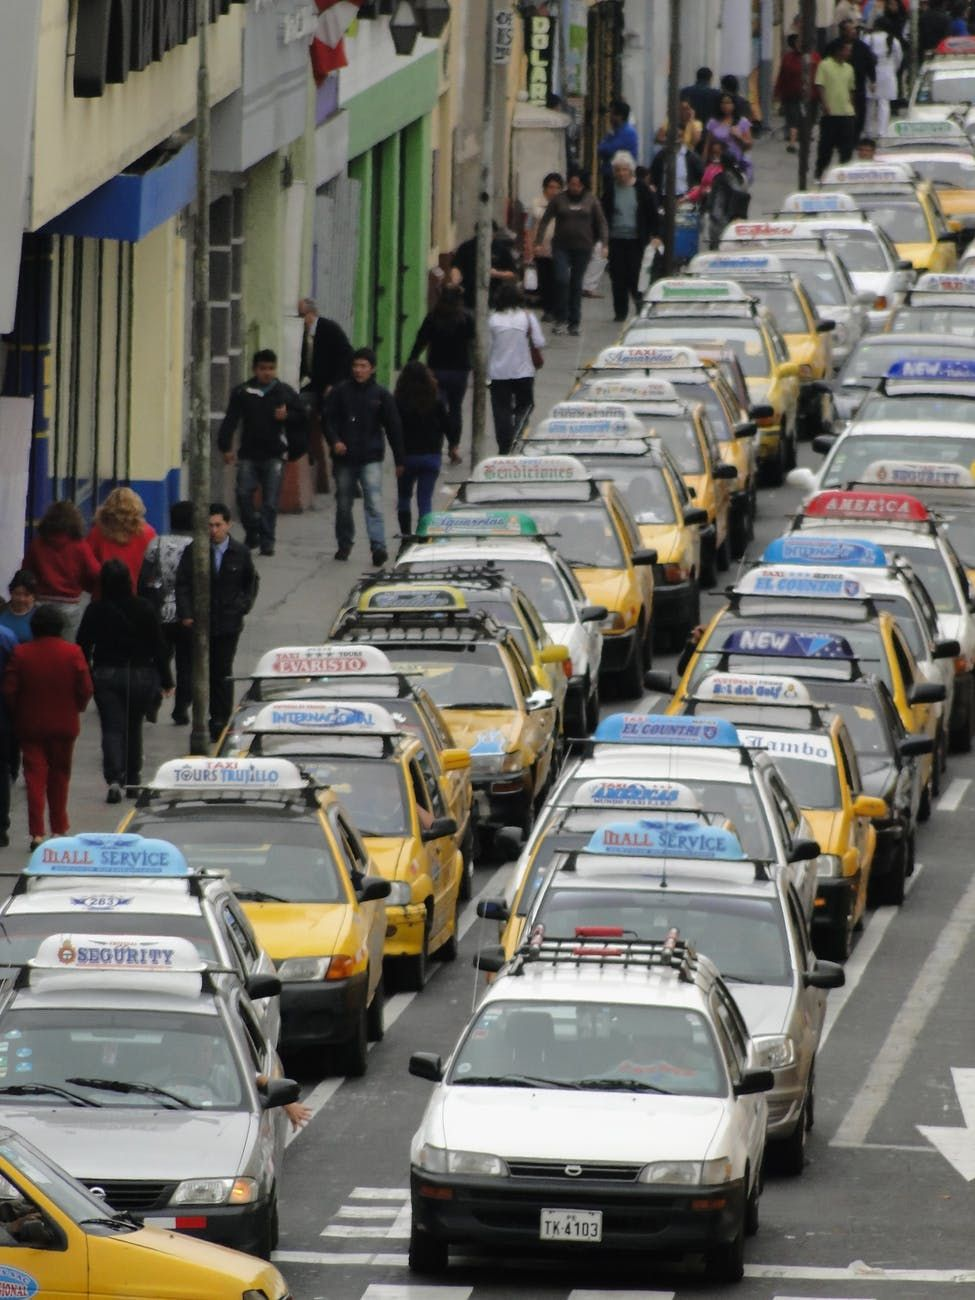 A traffic jam taking place in a busy city